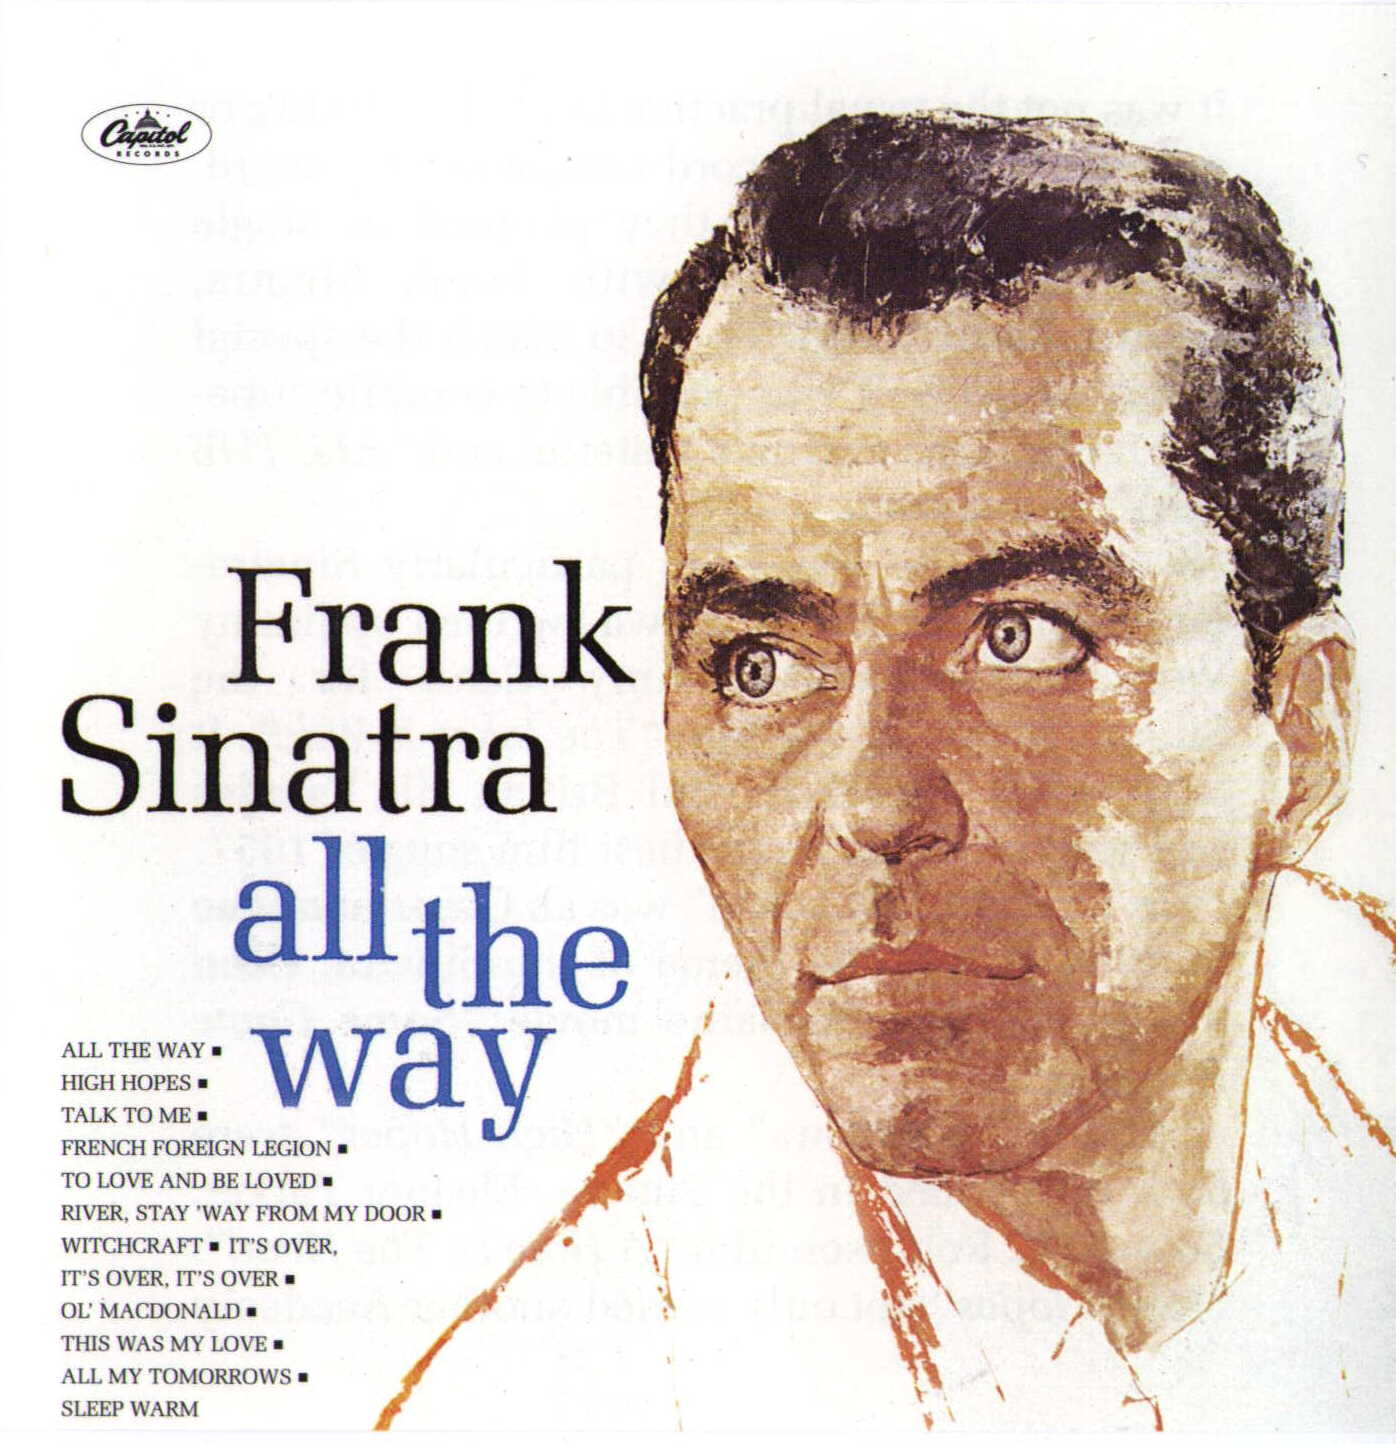 frank sinatra love is for the way: